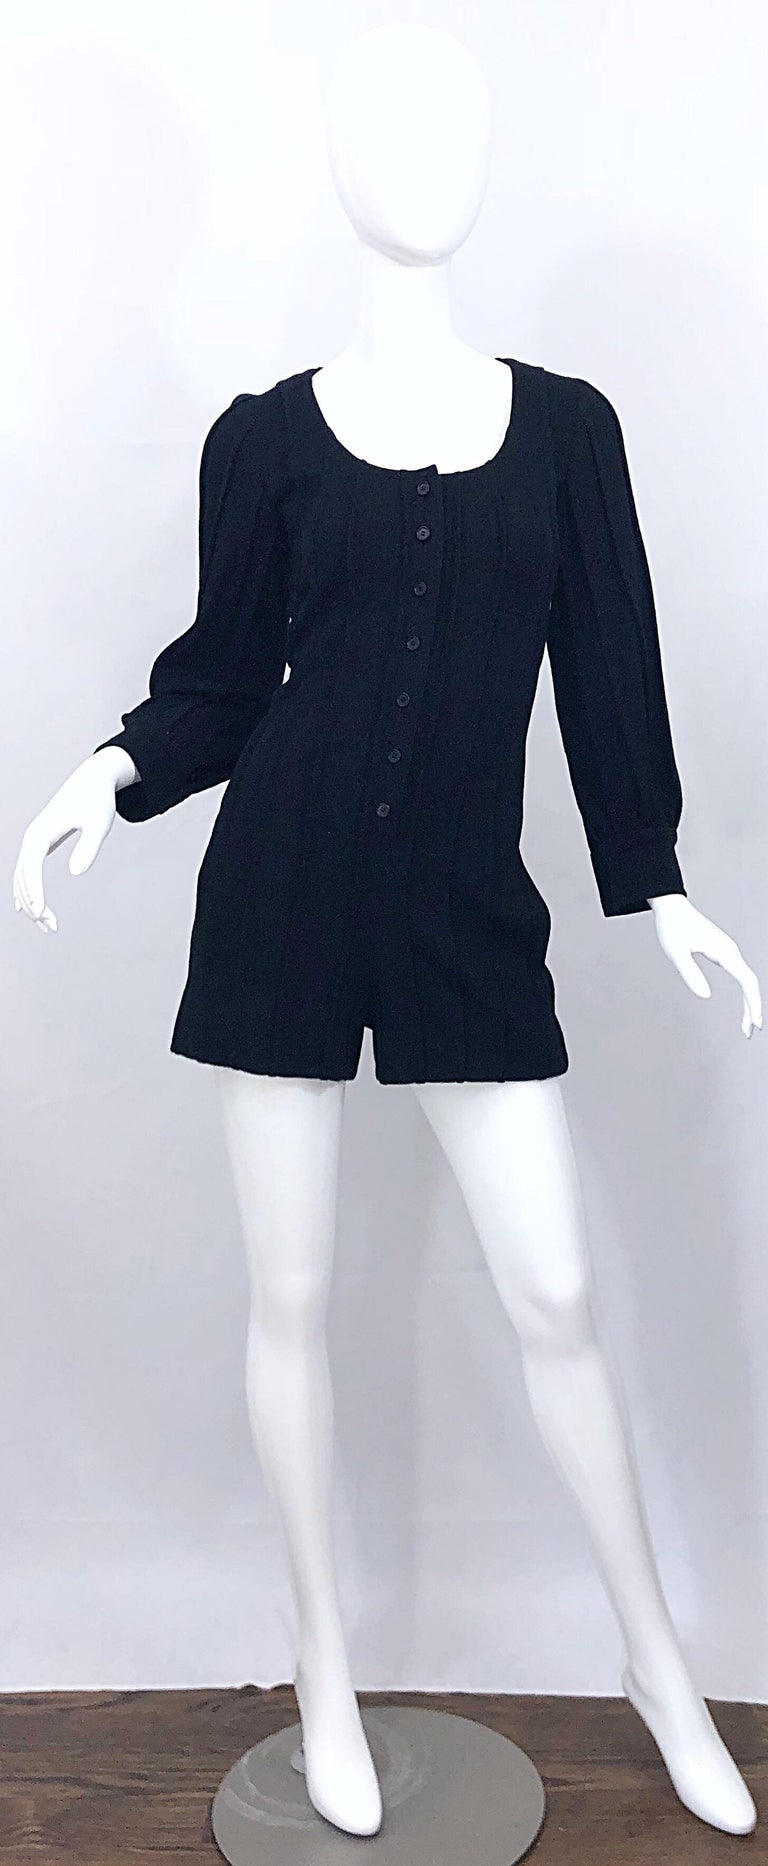 Vintage Givenchy Haute Couture Black Wool Long Sleeve One Piece Romper Jumpsuit For Sale 4